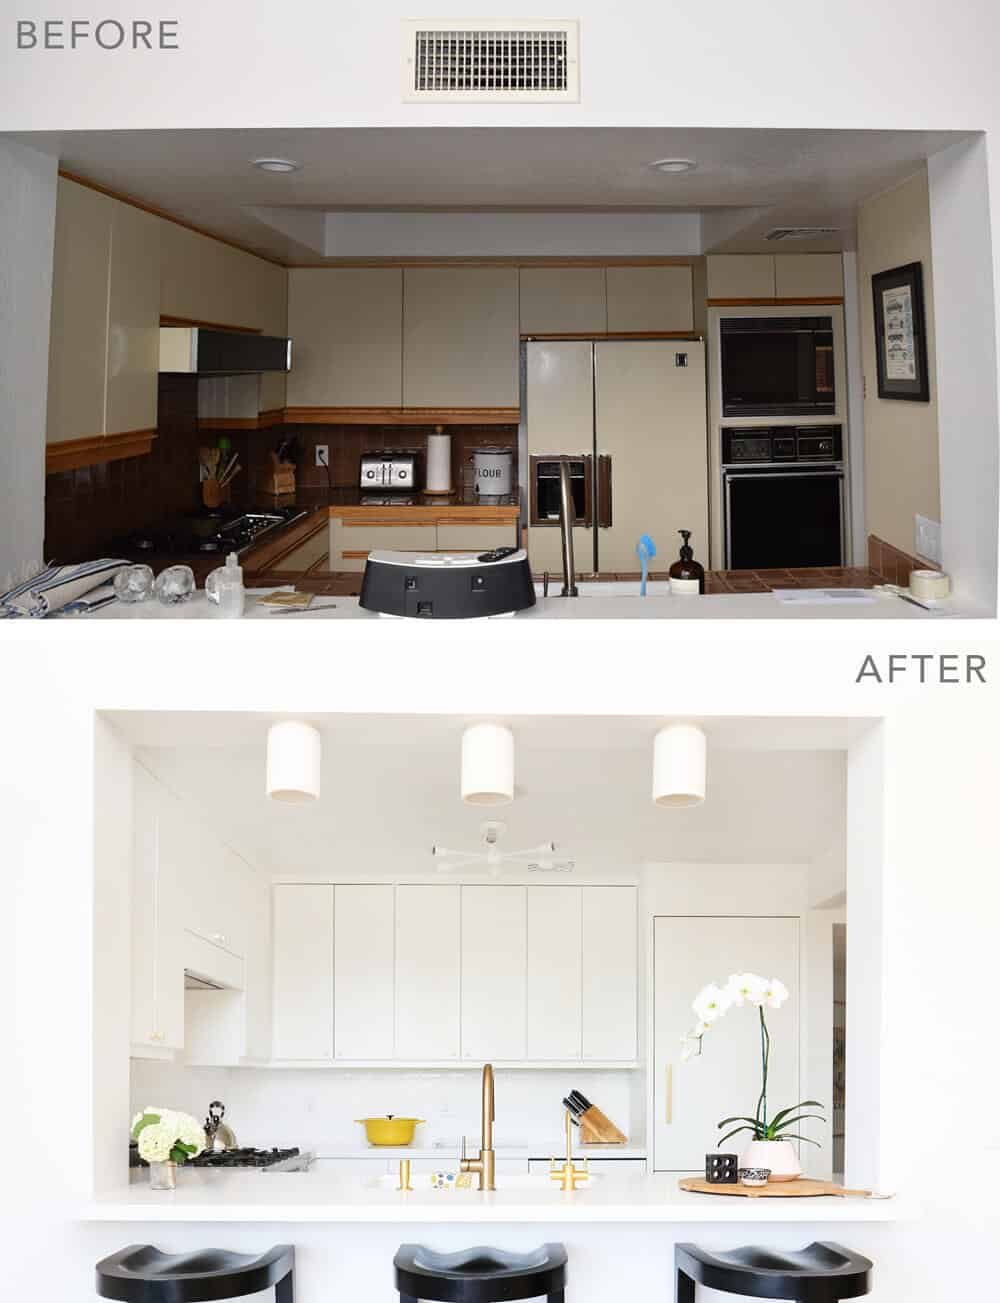 orcondo-kitchen-before-after-2